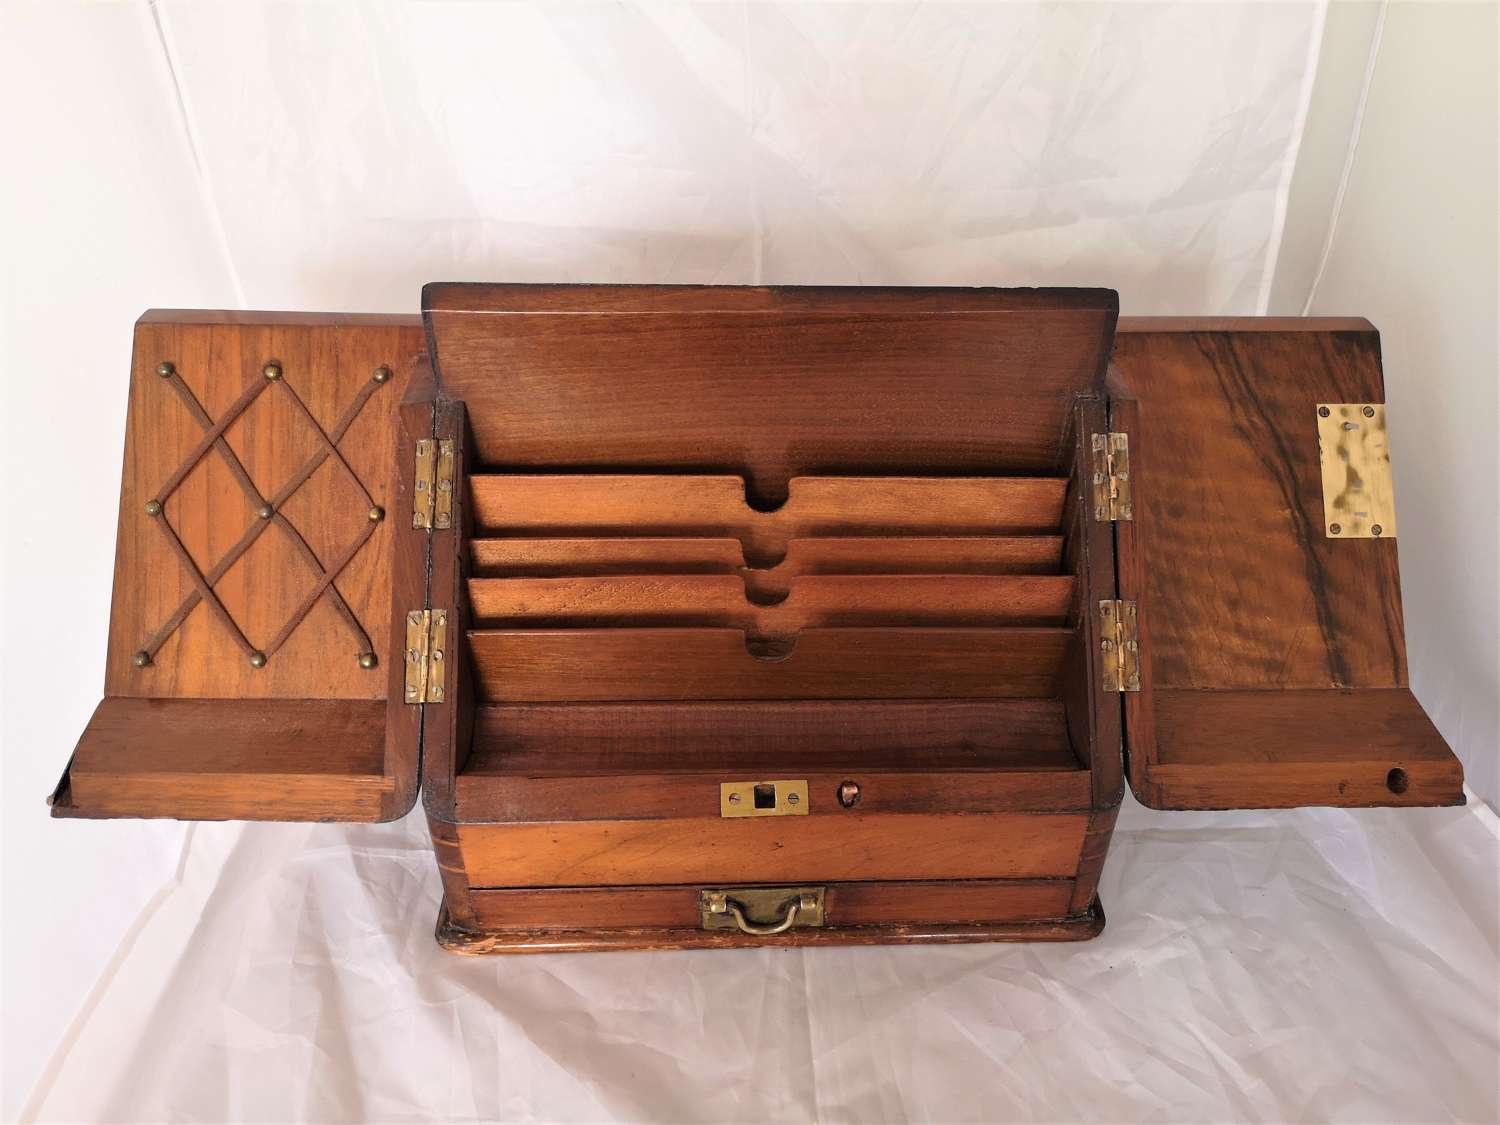 Mahogany early 20th century stationary box